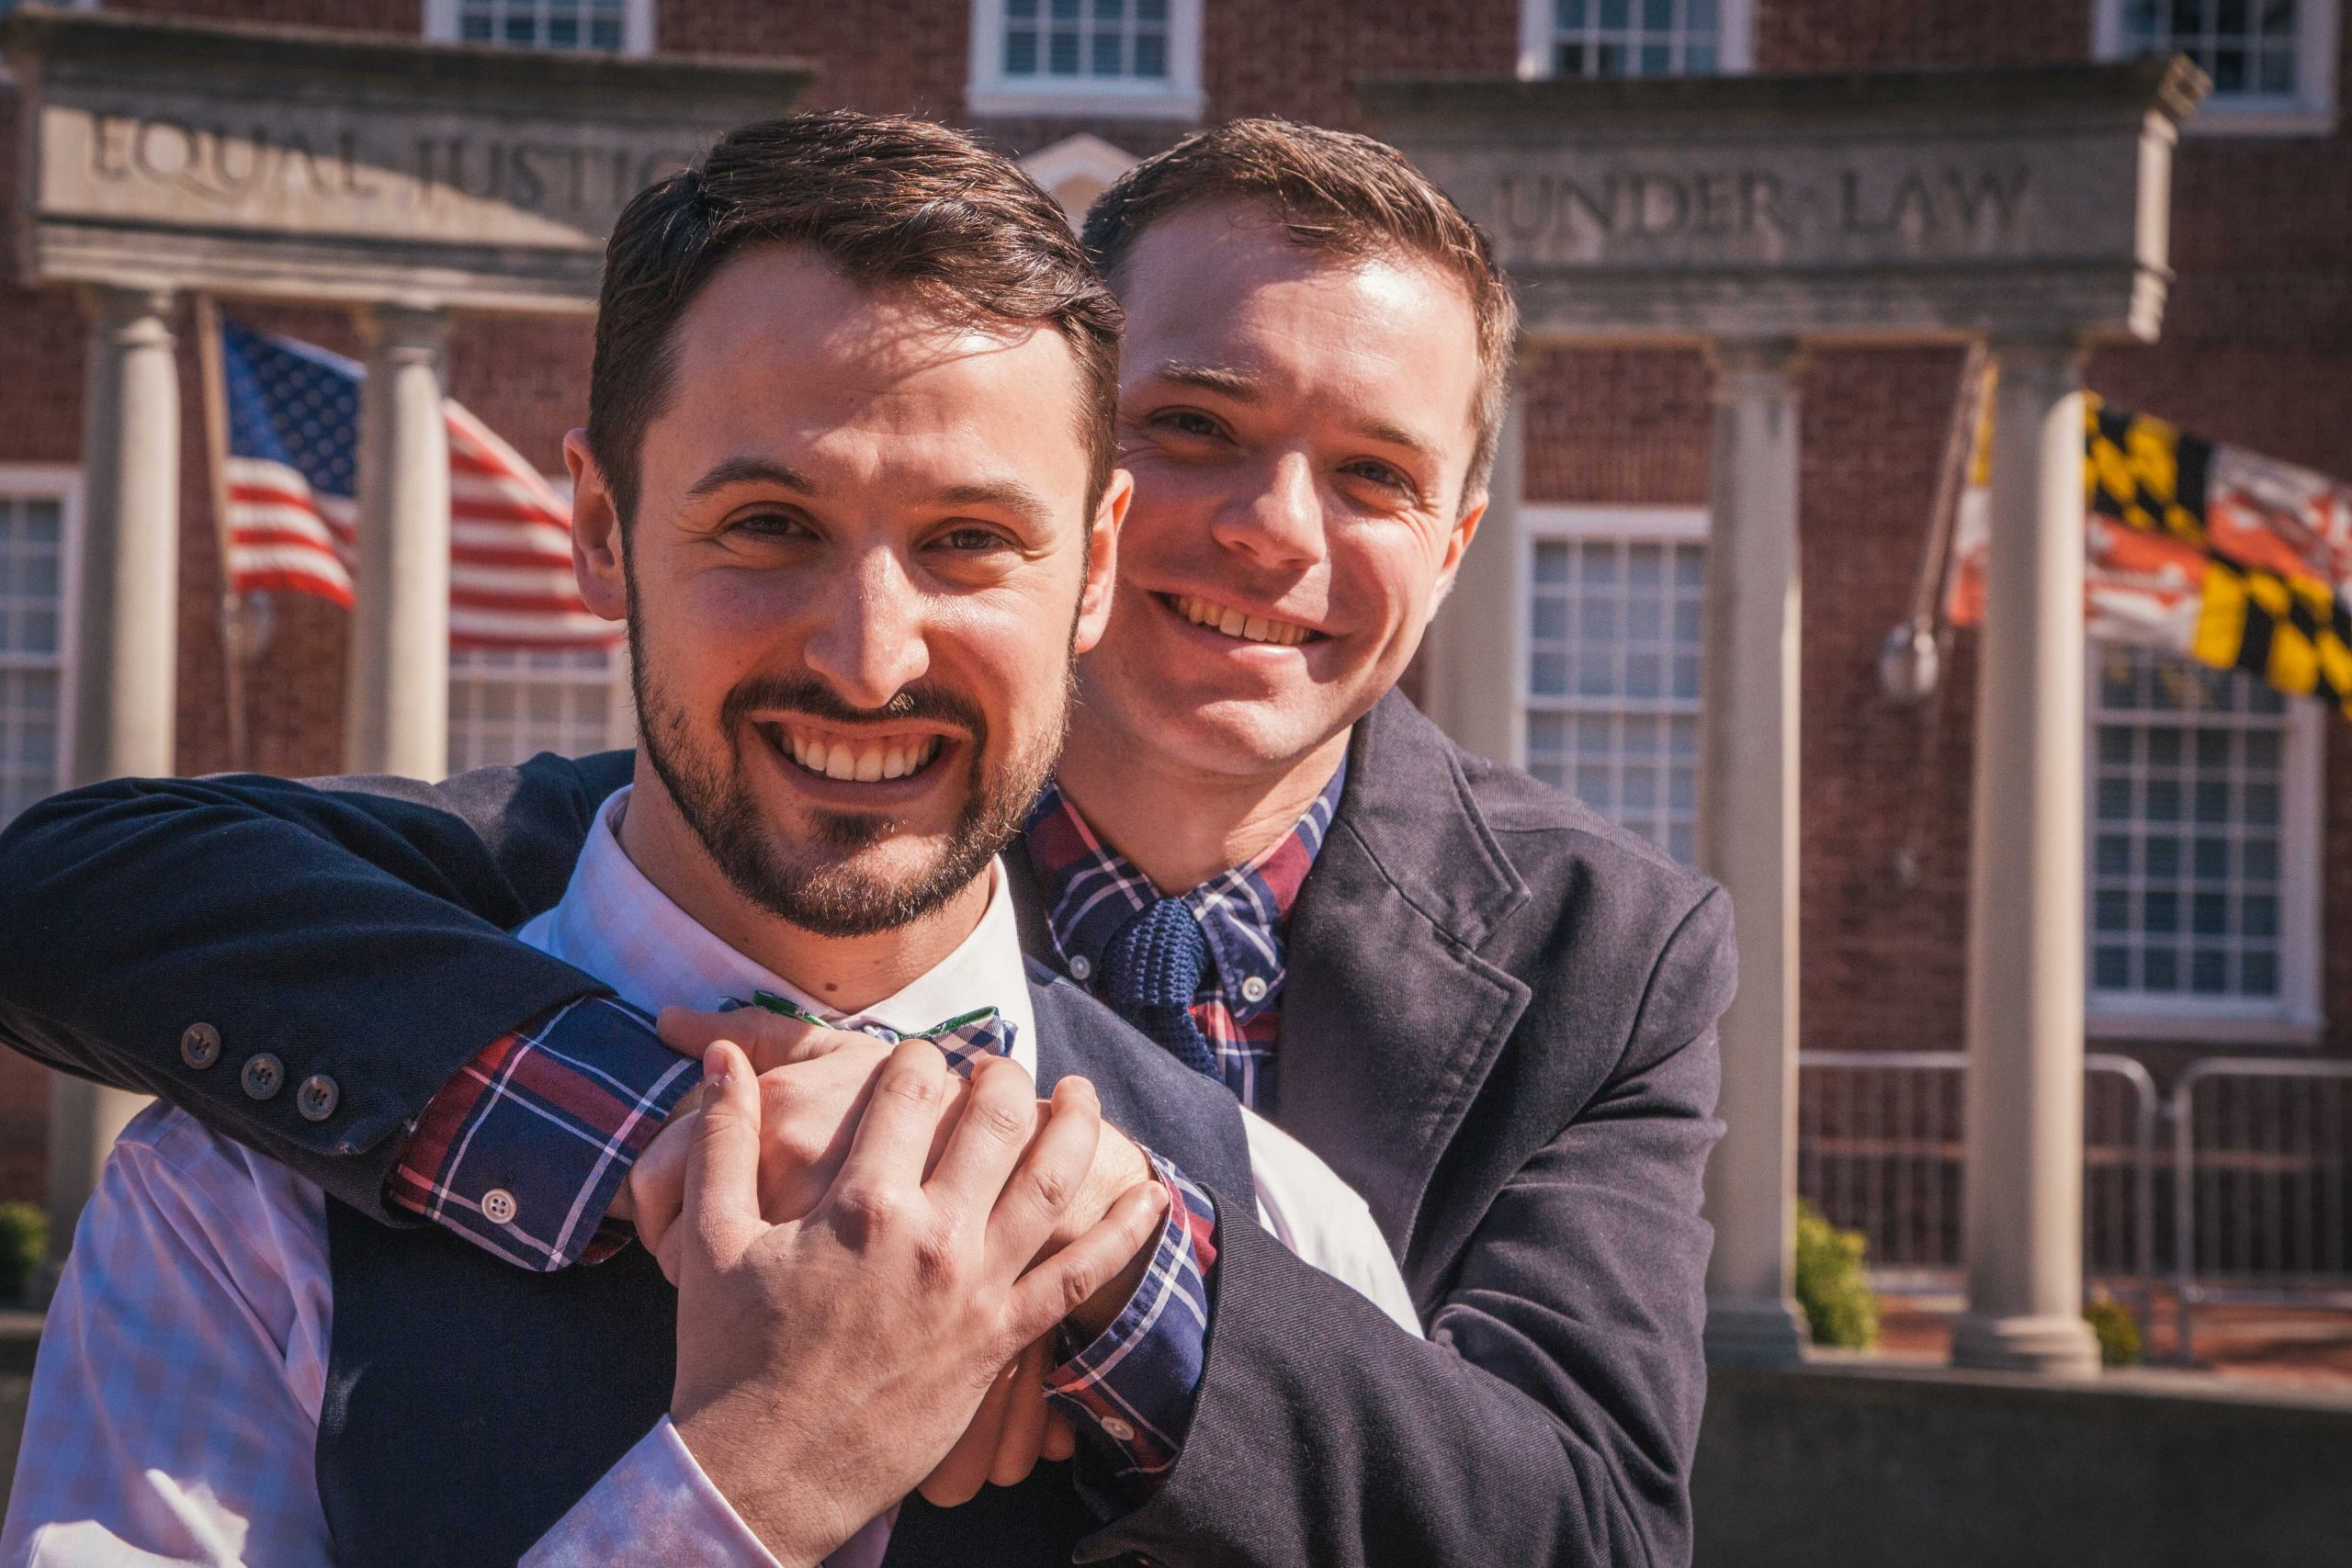 Former College Park City Councilmember PJ Brennan and his husband, Nick, on their wedding day in 2013.